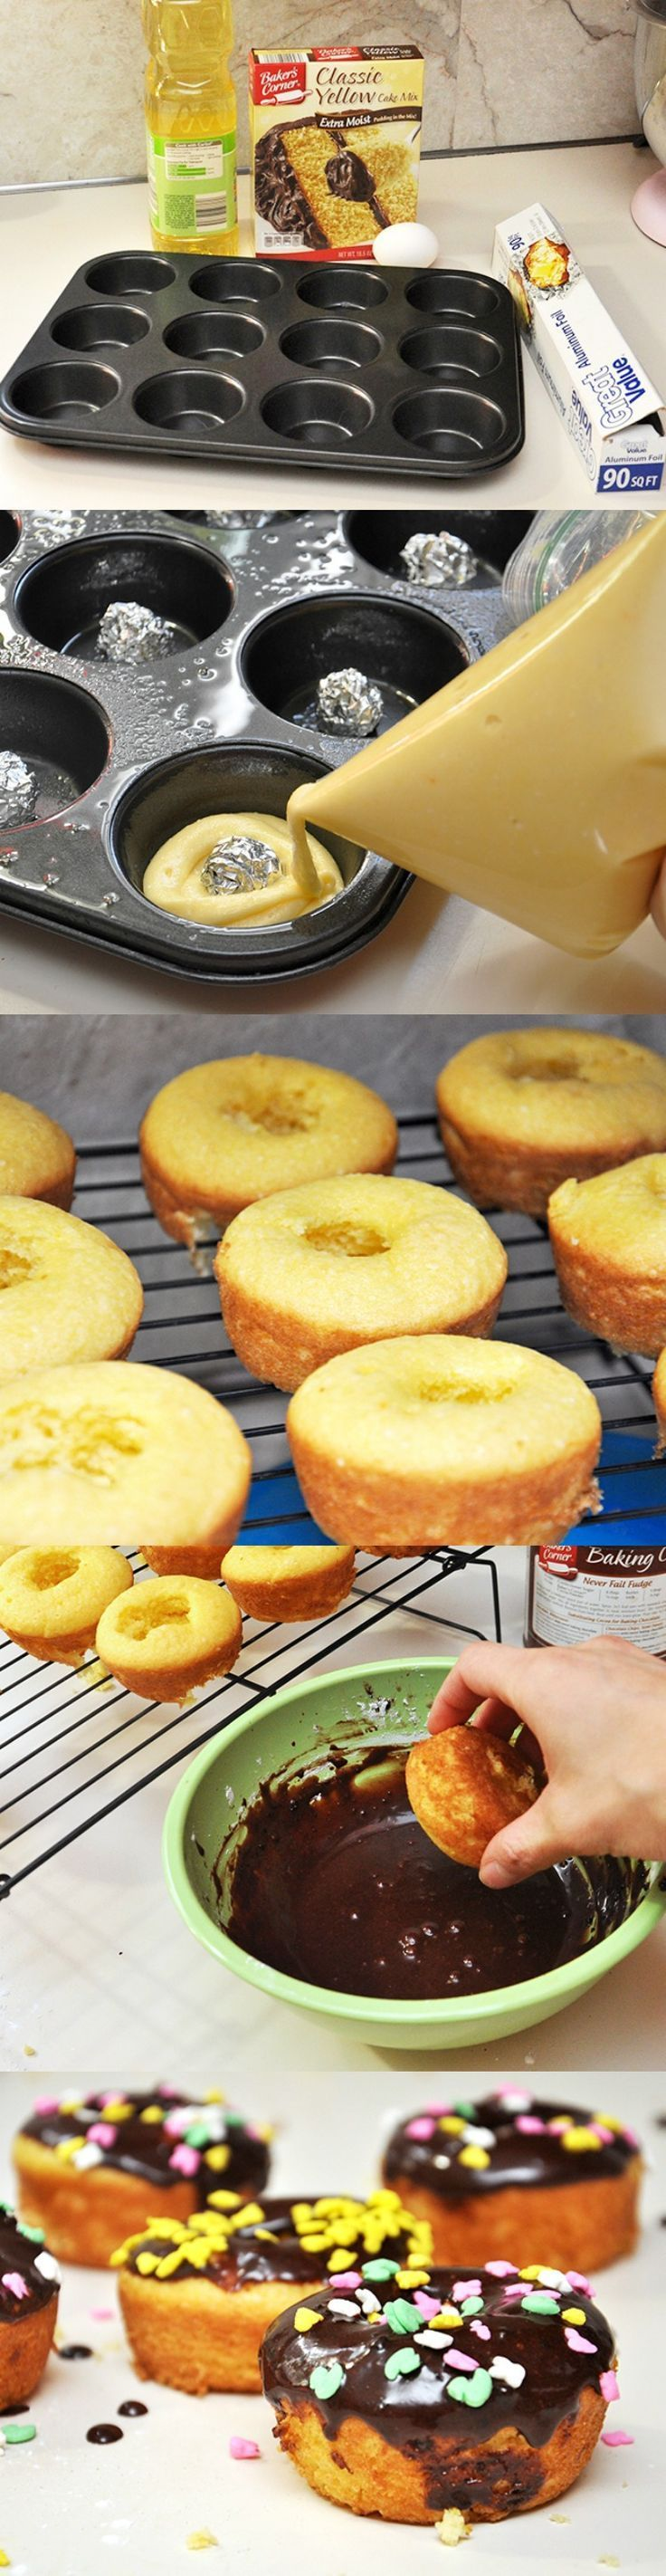 What looks like a donut but isn't fried? This easy baked donut recipe! These delicious yellow cake mix donuts are perfect for when you want a tasty treat to satisfy your sweet tooth. You don't need a donut pan. You'll love the chocolate frosting and sprinkles on top!